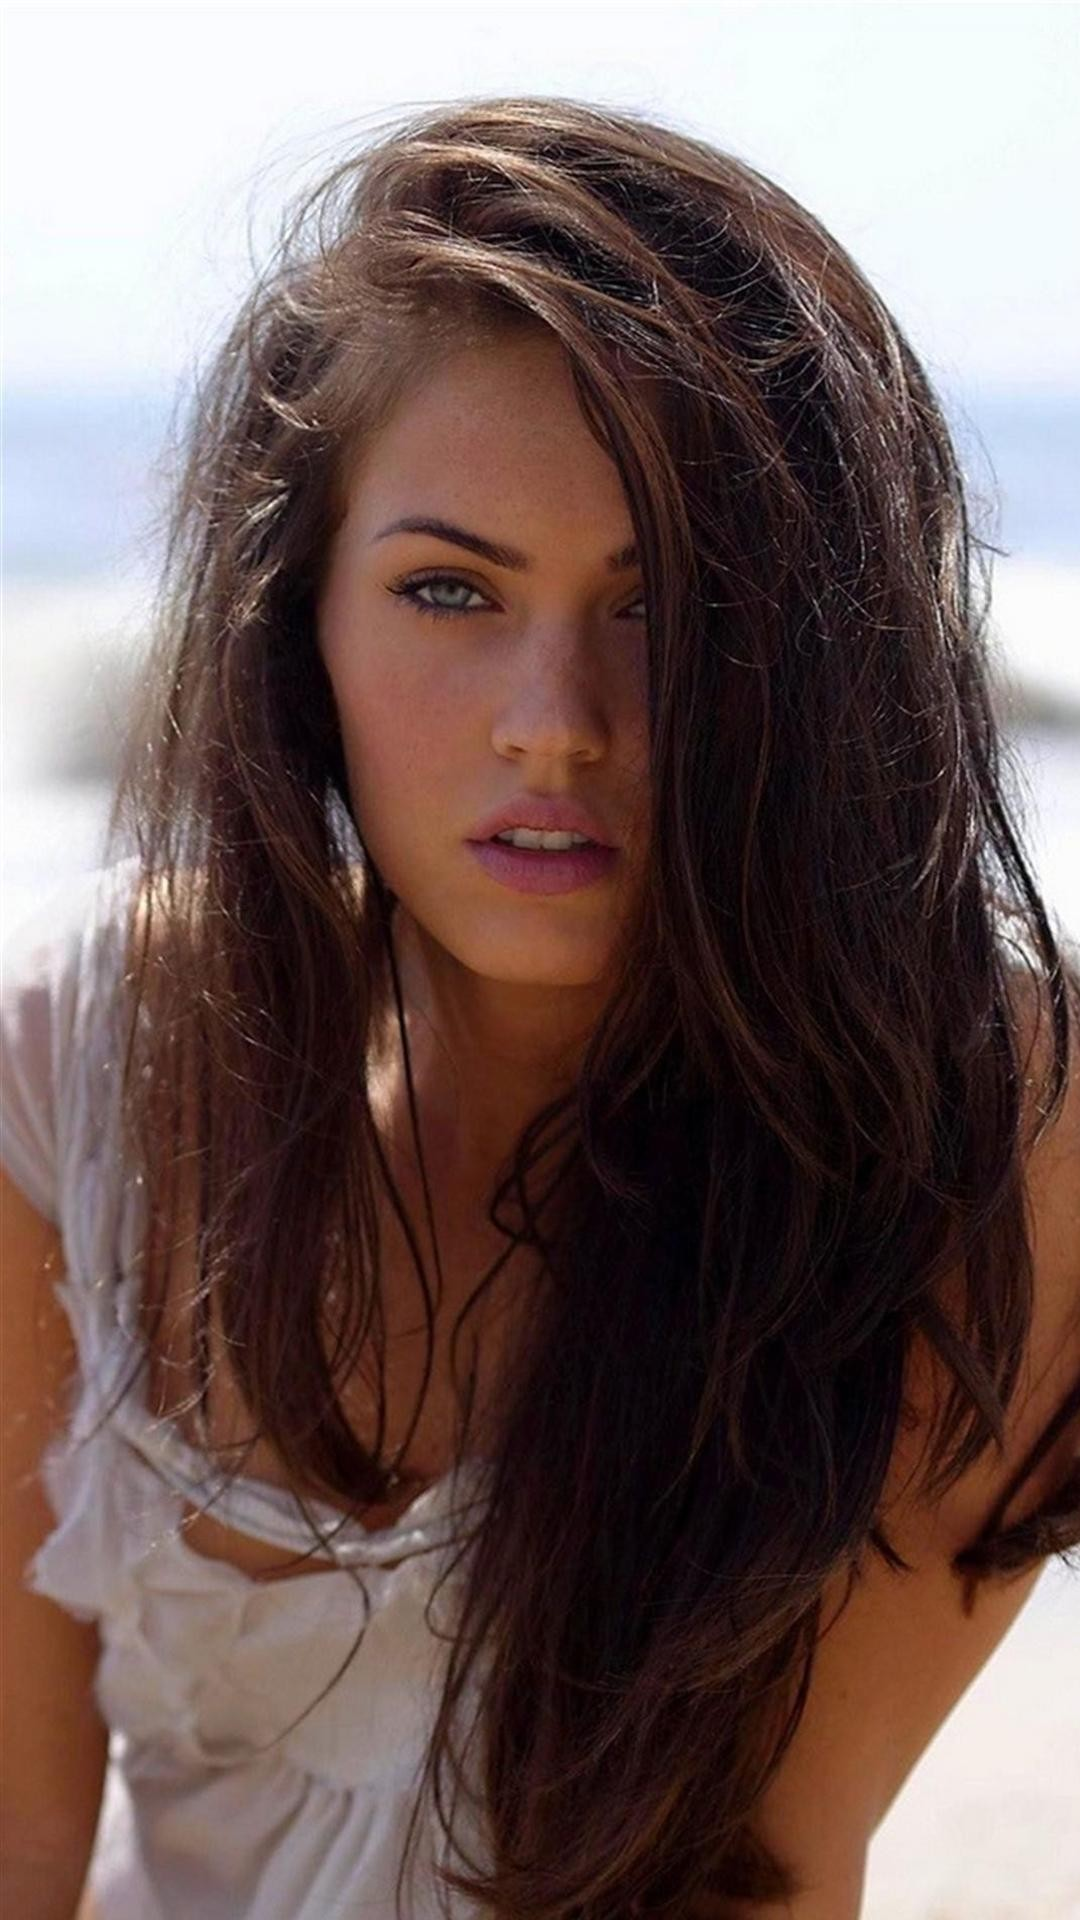 Sea Girls Beach Smartphone Wallpapers HD